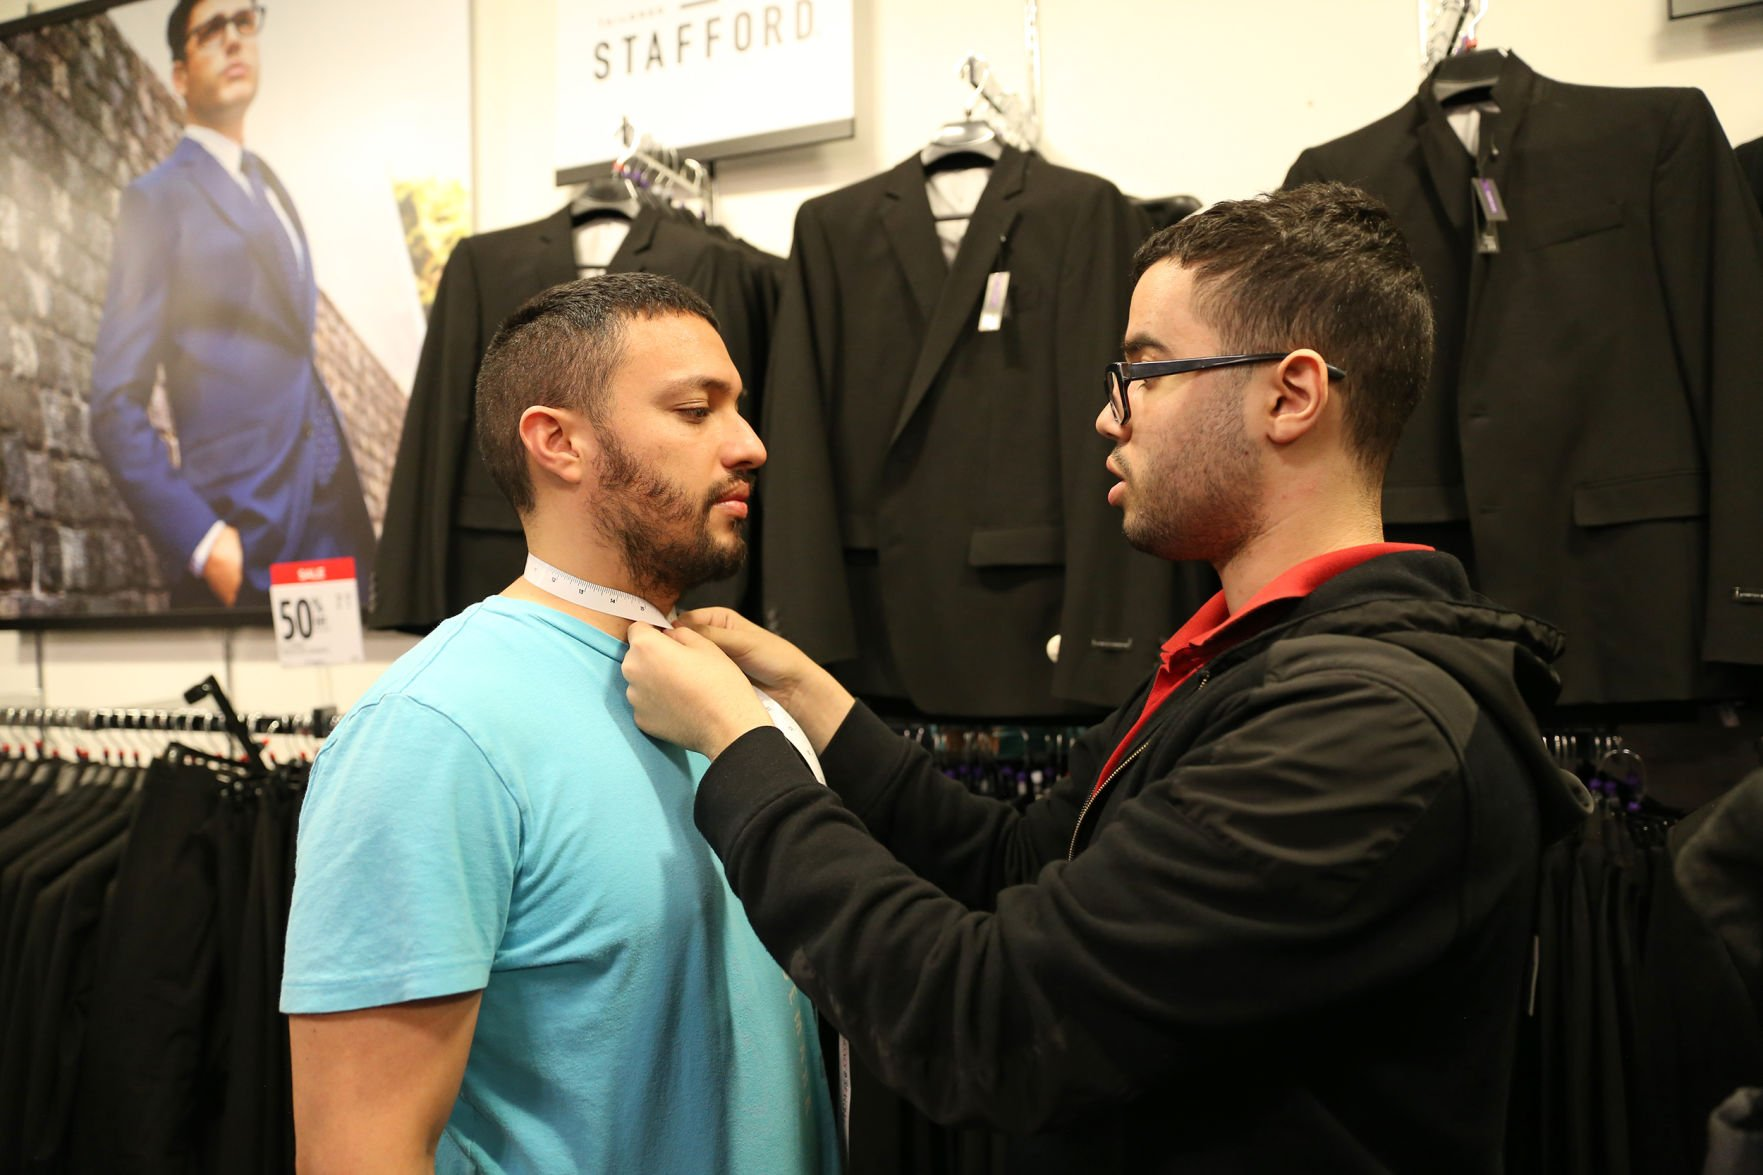 Students suit up for the JCPenney Suit-Up Event